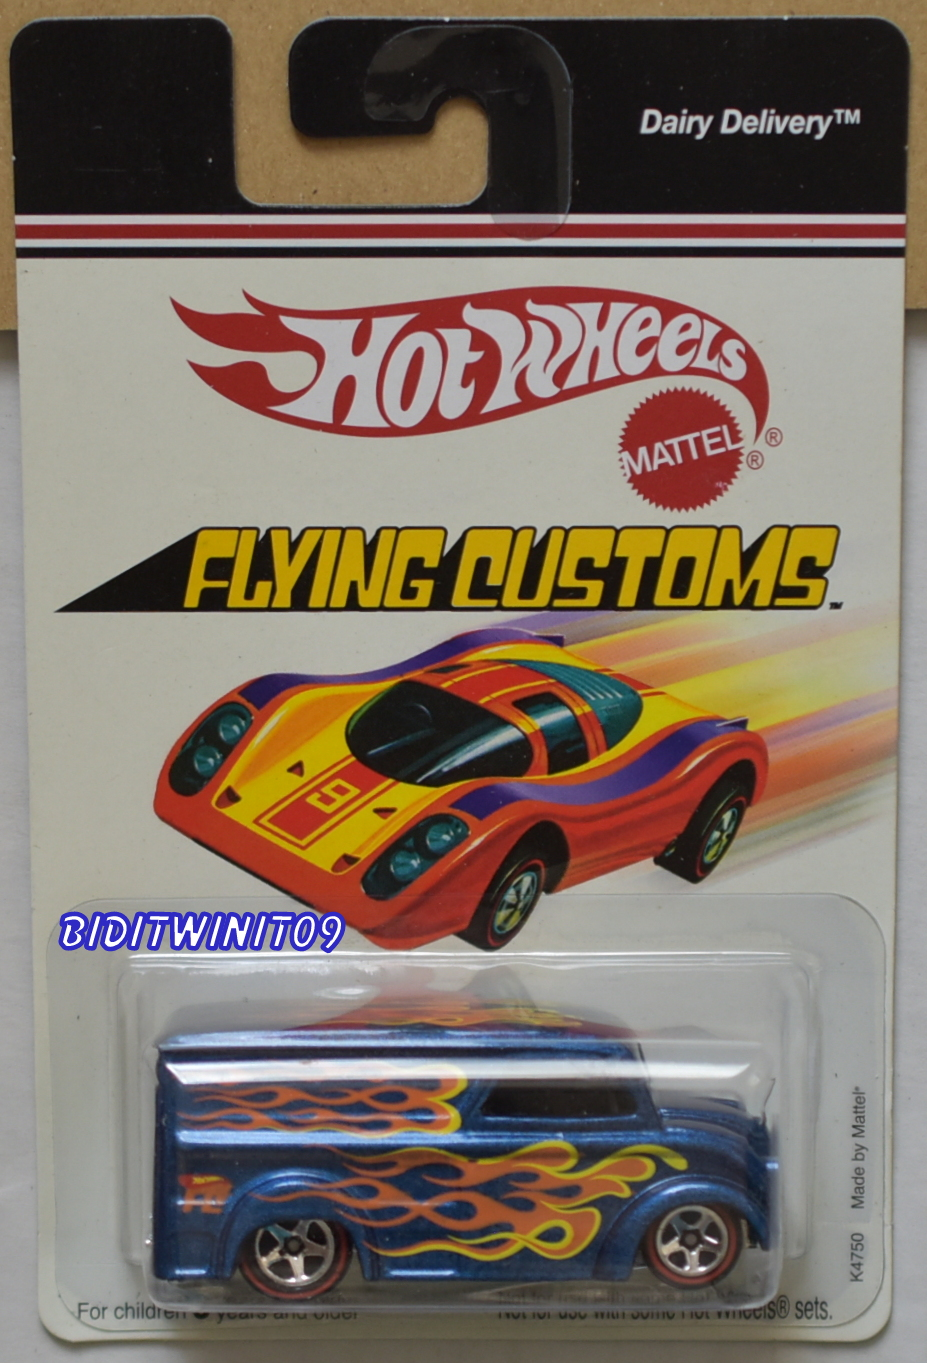 HOT WHEELS FLYING CUSTOMS DAIRY DELIVERY K4750 BLUE